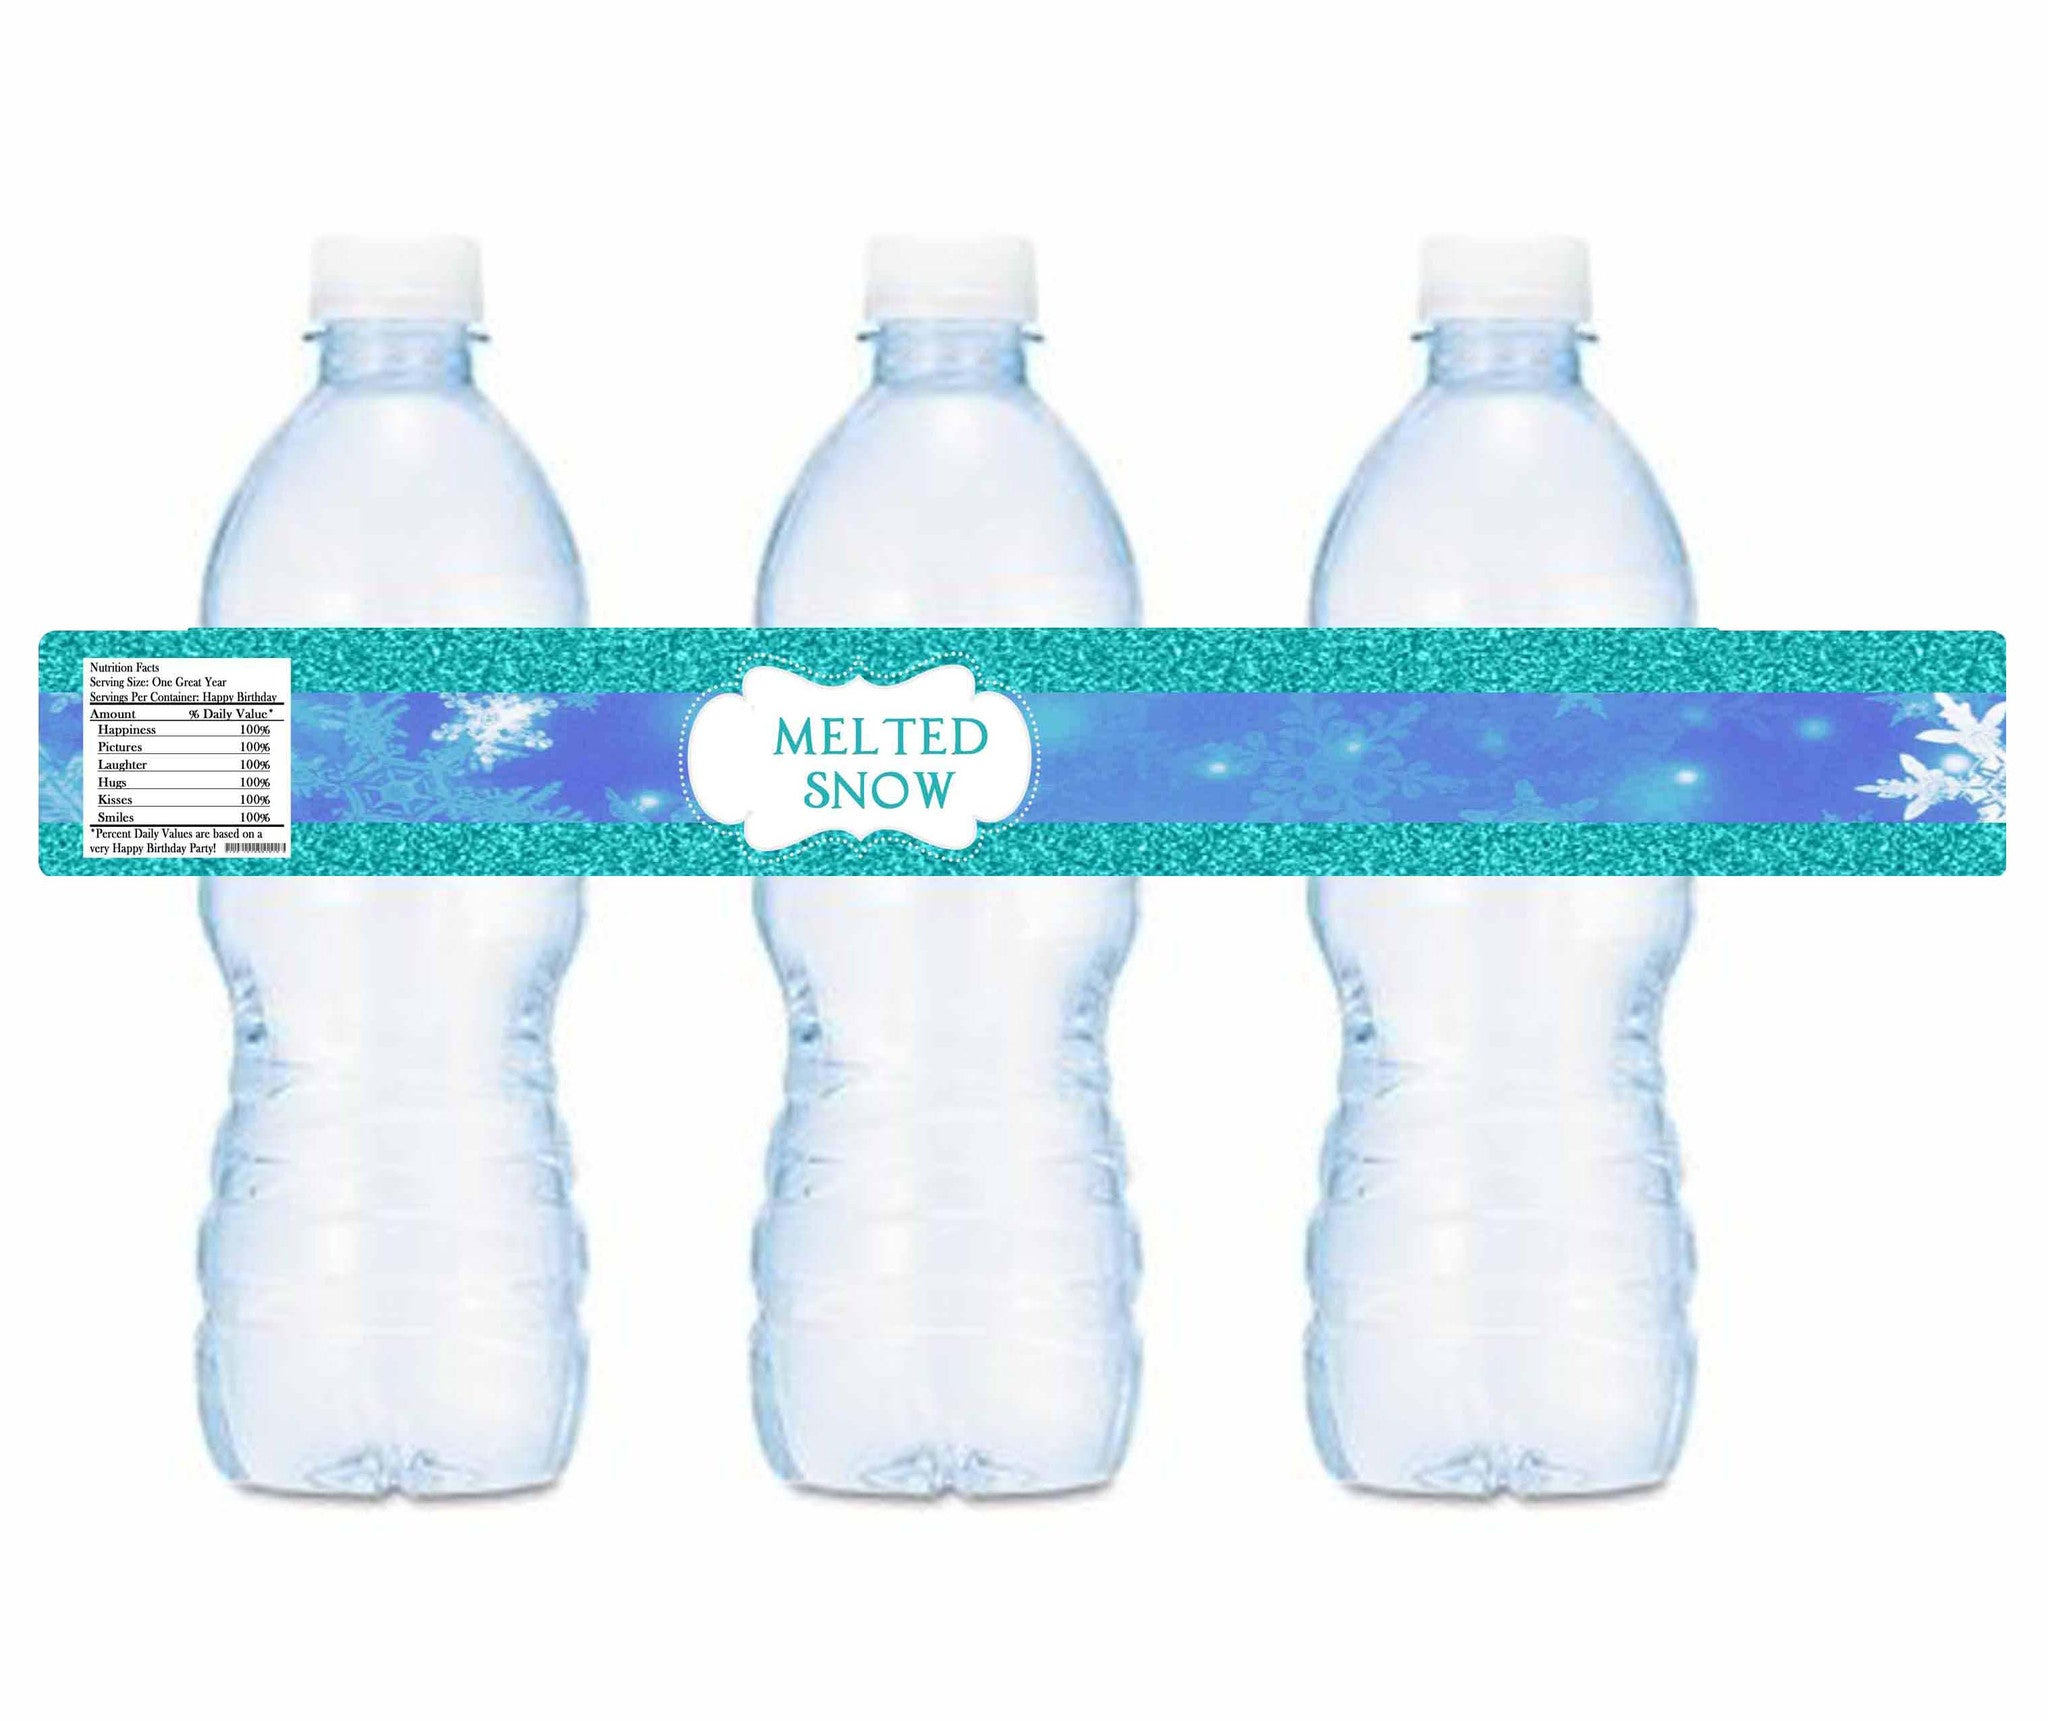 Frozen Melted Ice Water Bottle Labels - Instant Printable - Invites and Delites